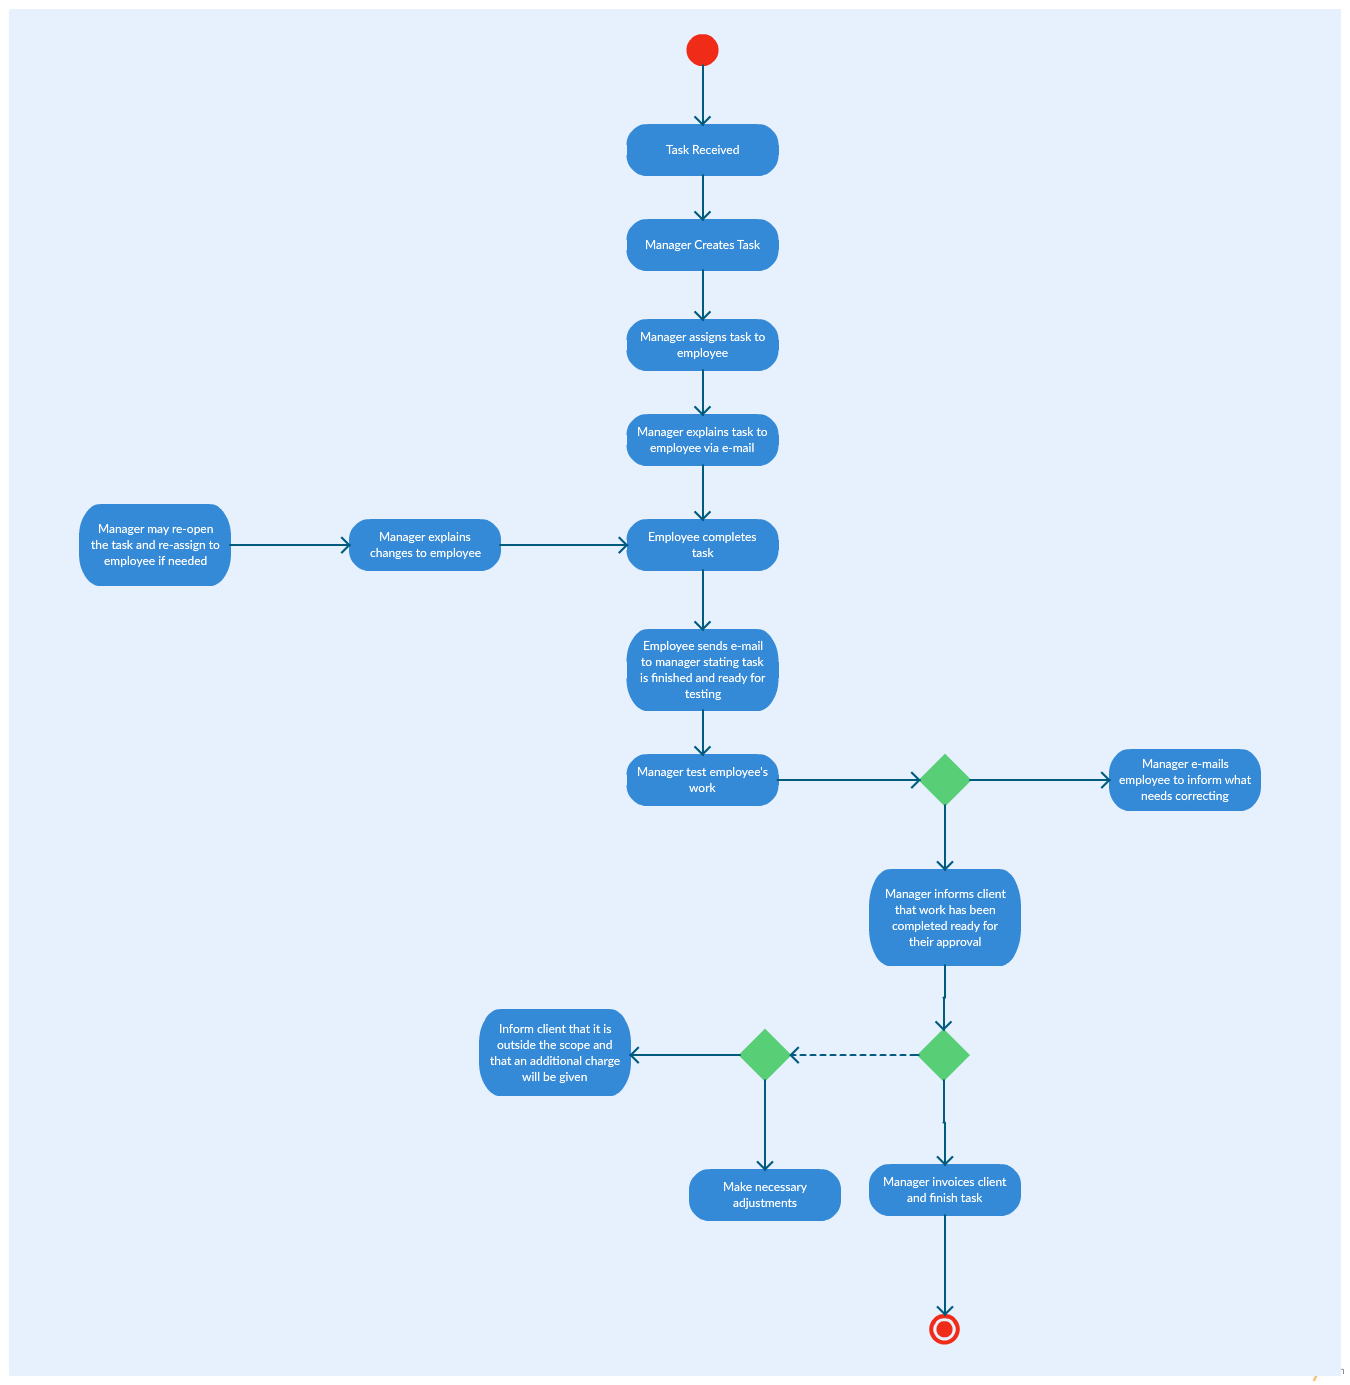 project management diagram Use these flowchart diagrams as a visual aid to help understand the project management methodology the diagrams show parallel and interdependent processes, as well.